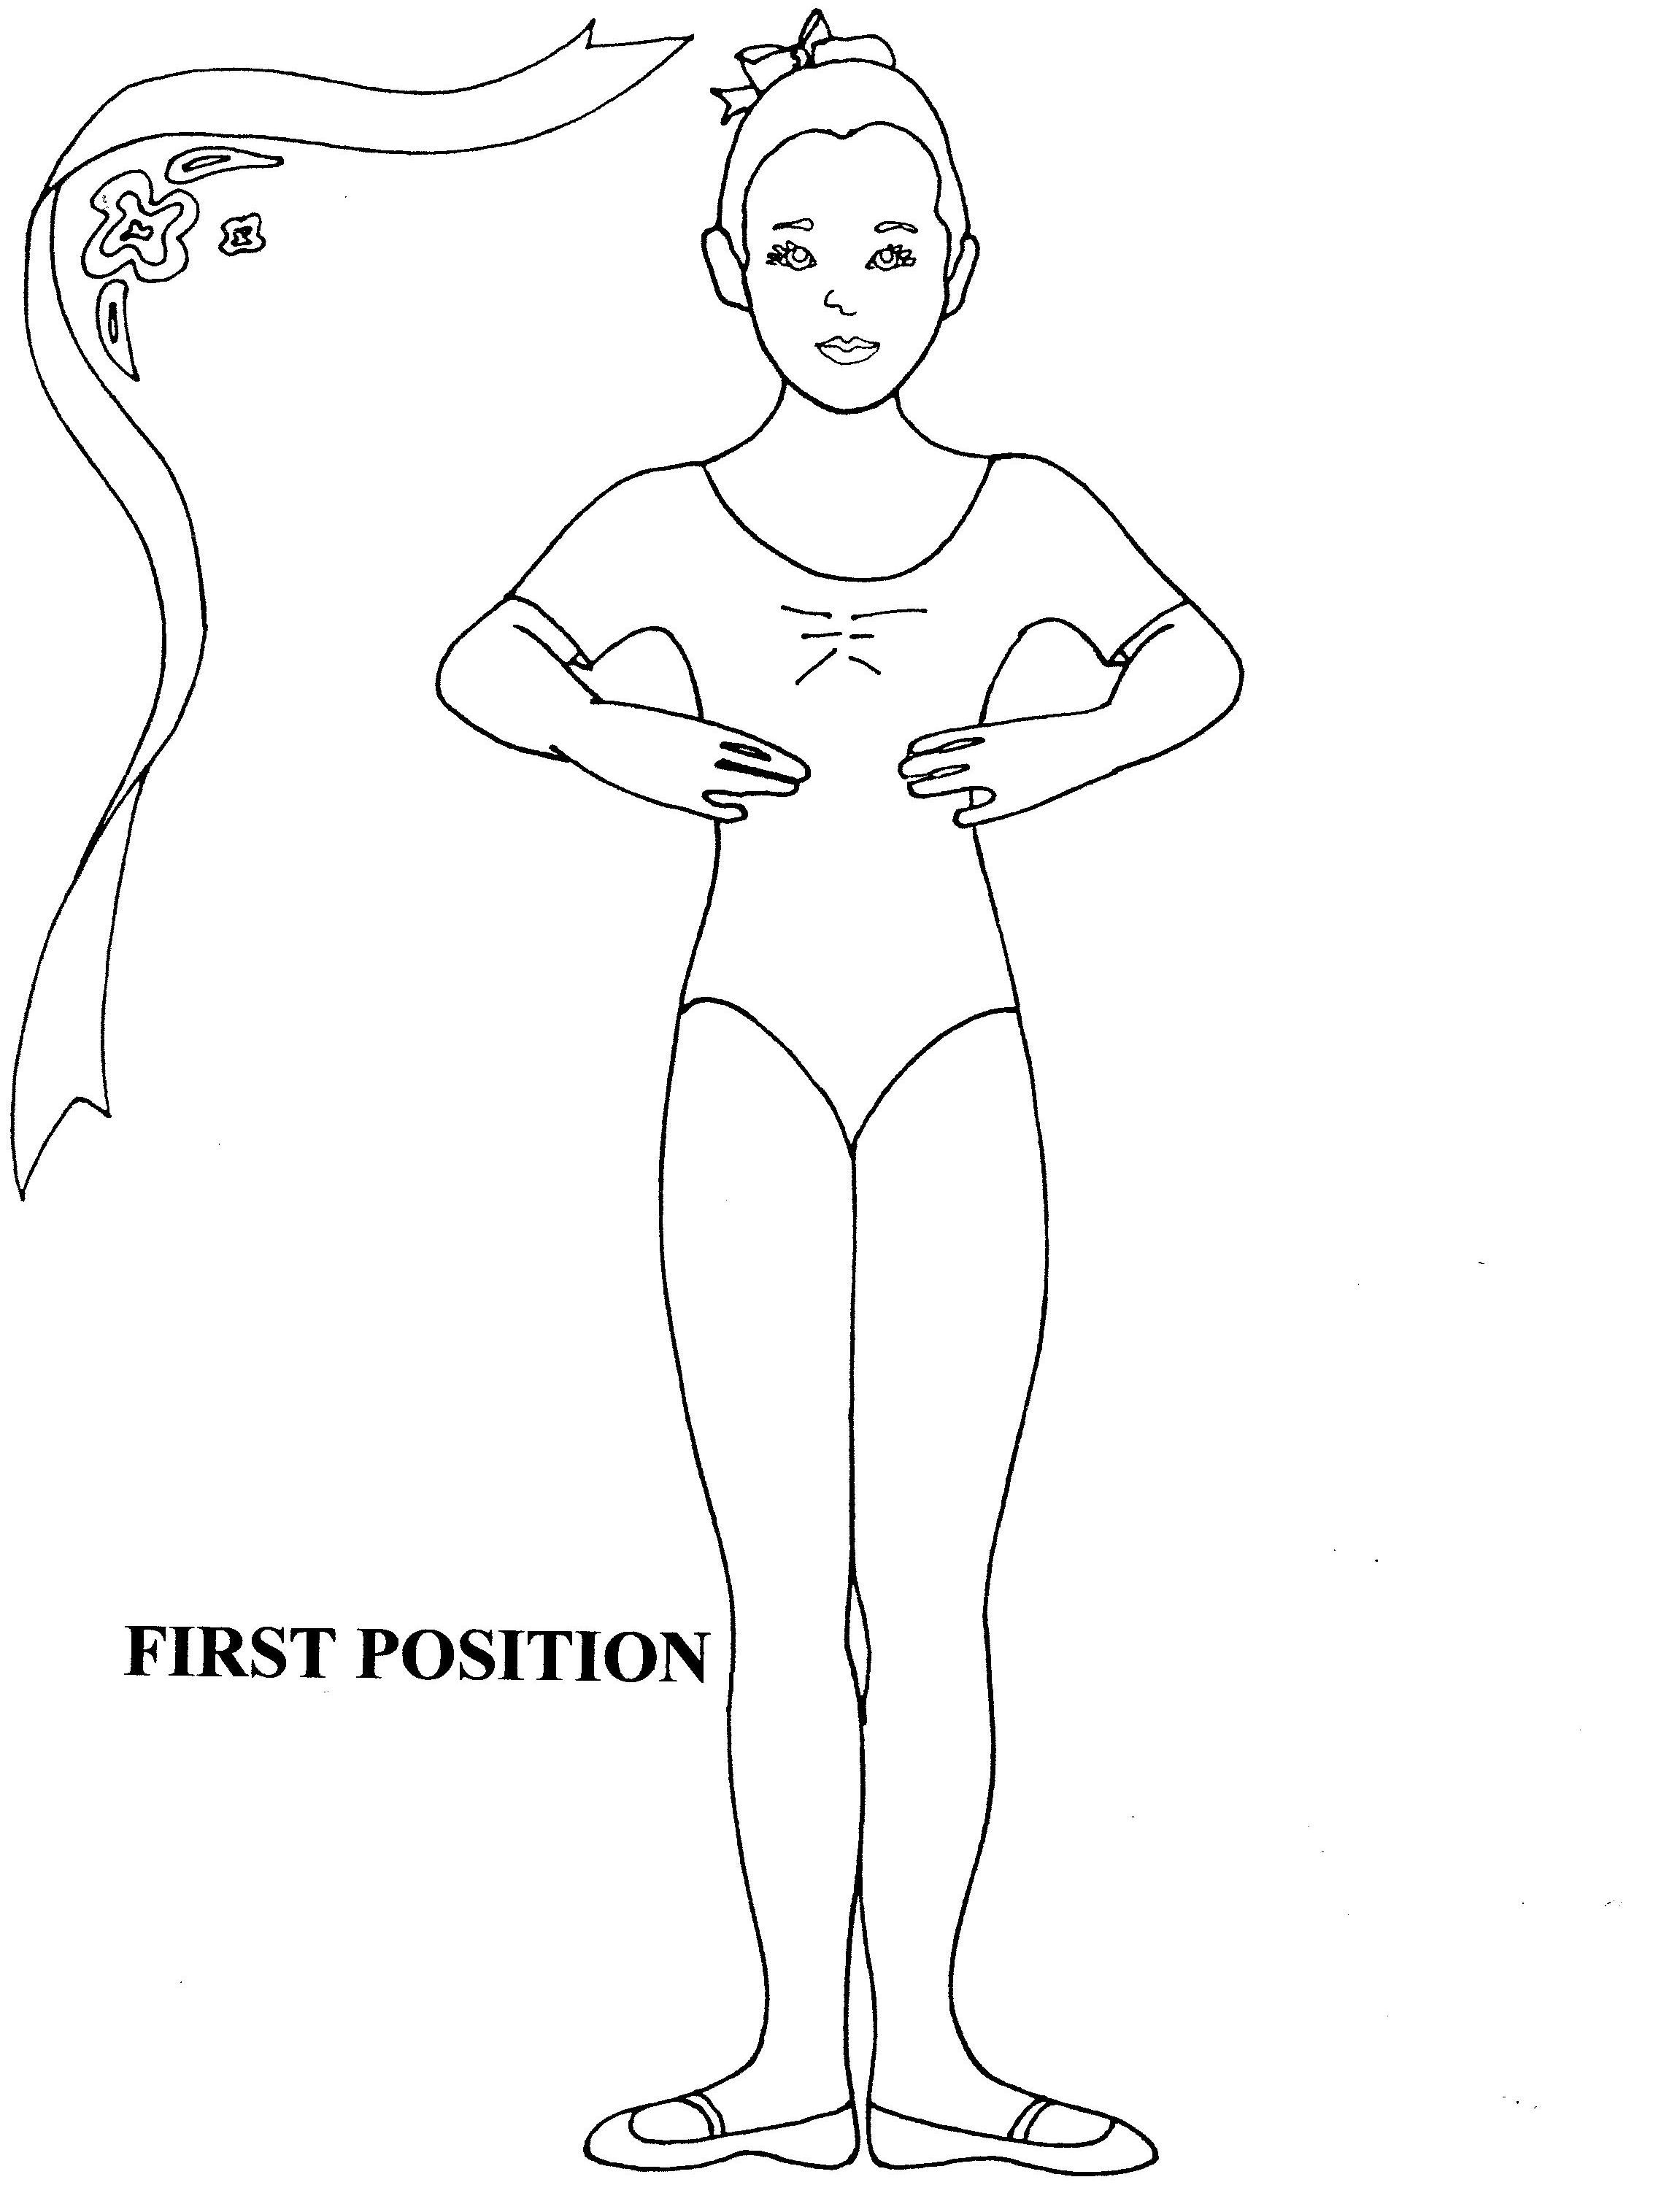 Ballet First Position Coloring Sheet With Images Dance